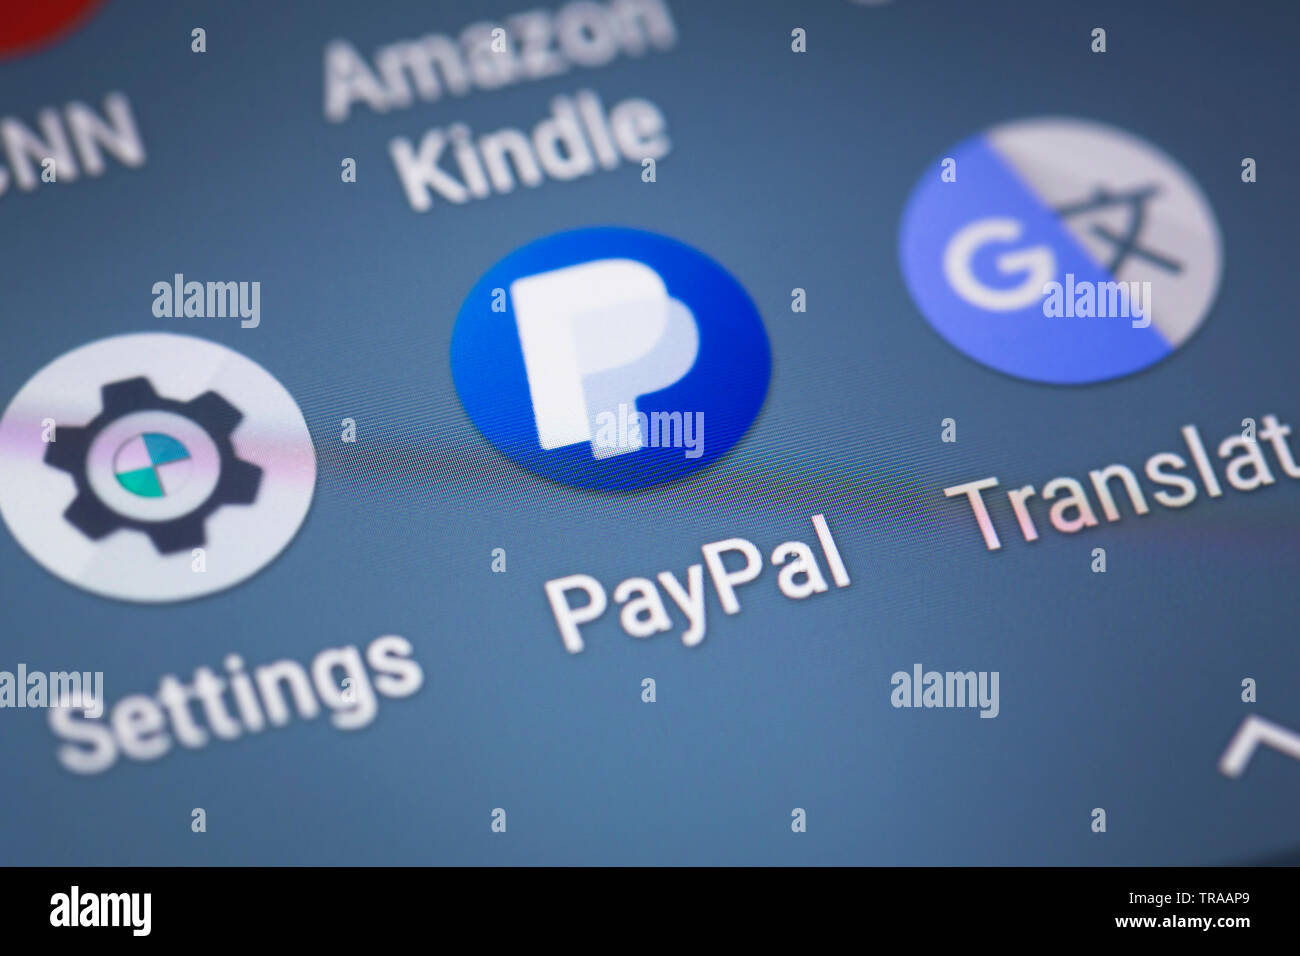 Paypal logo icon on mobile phone screen Stock Photo